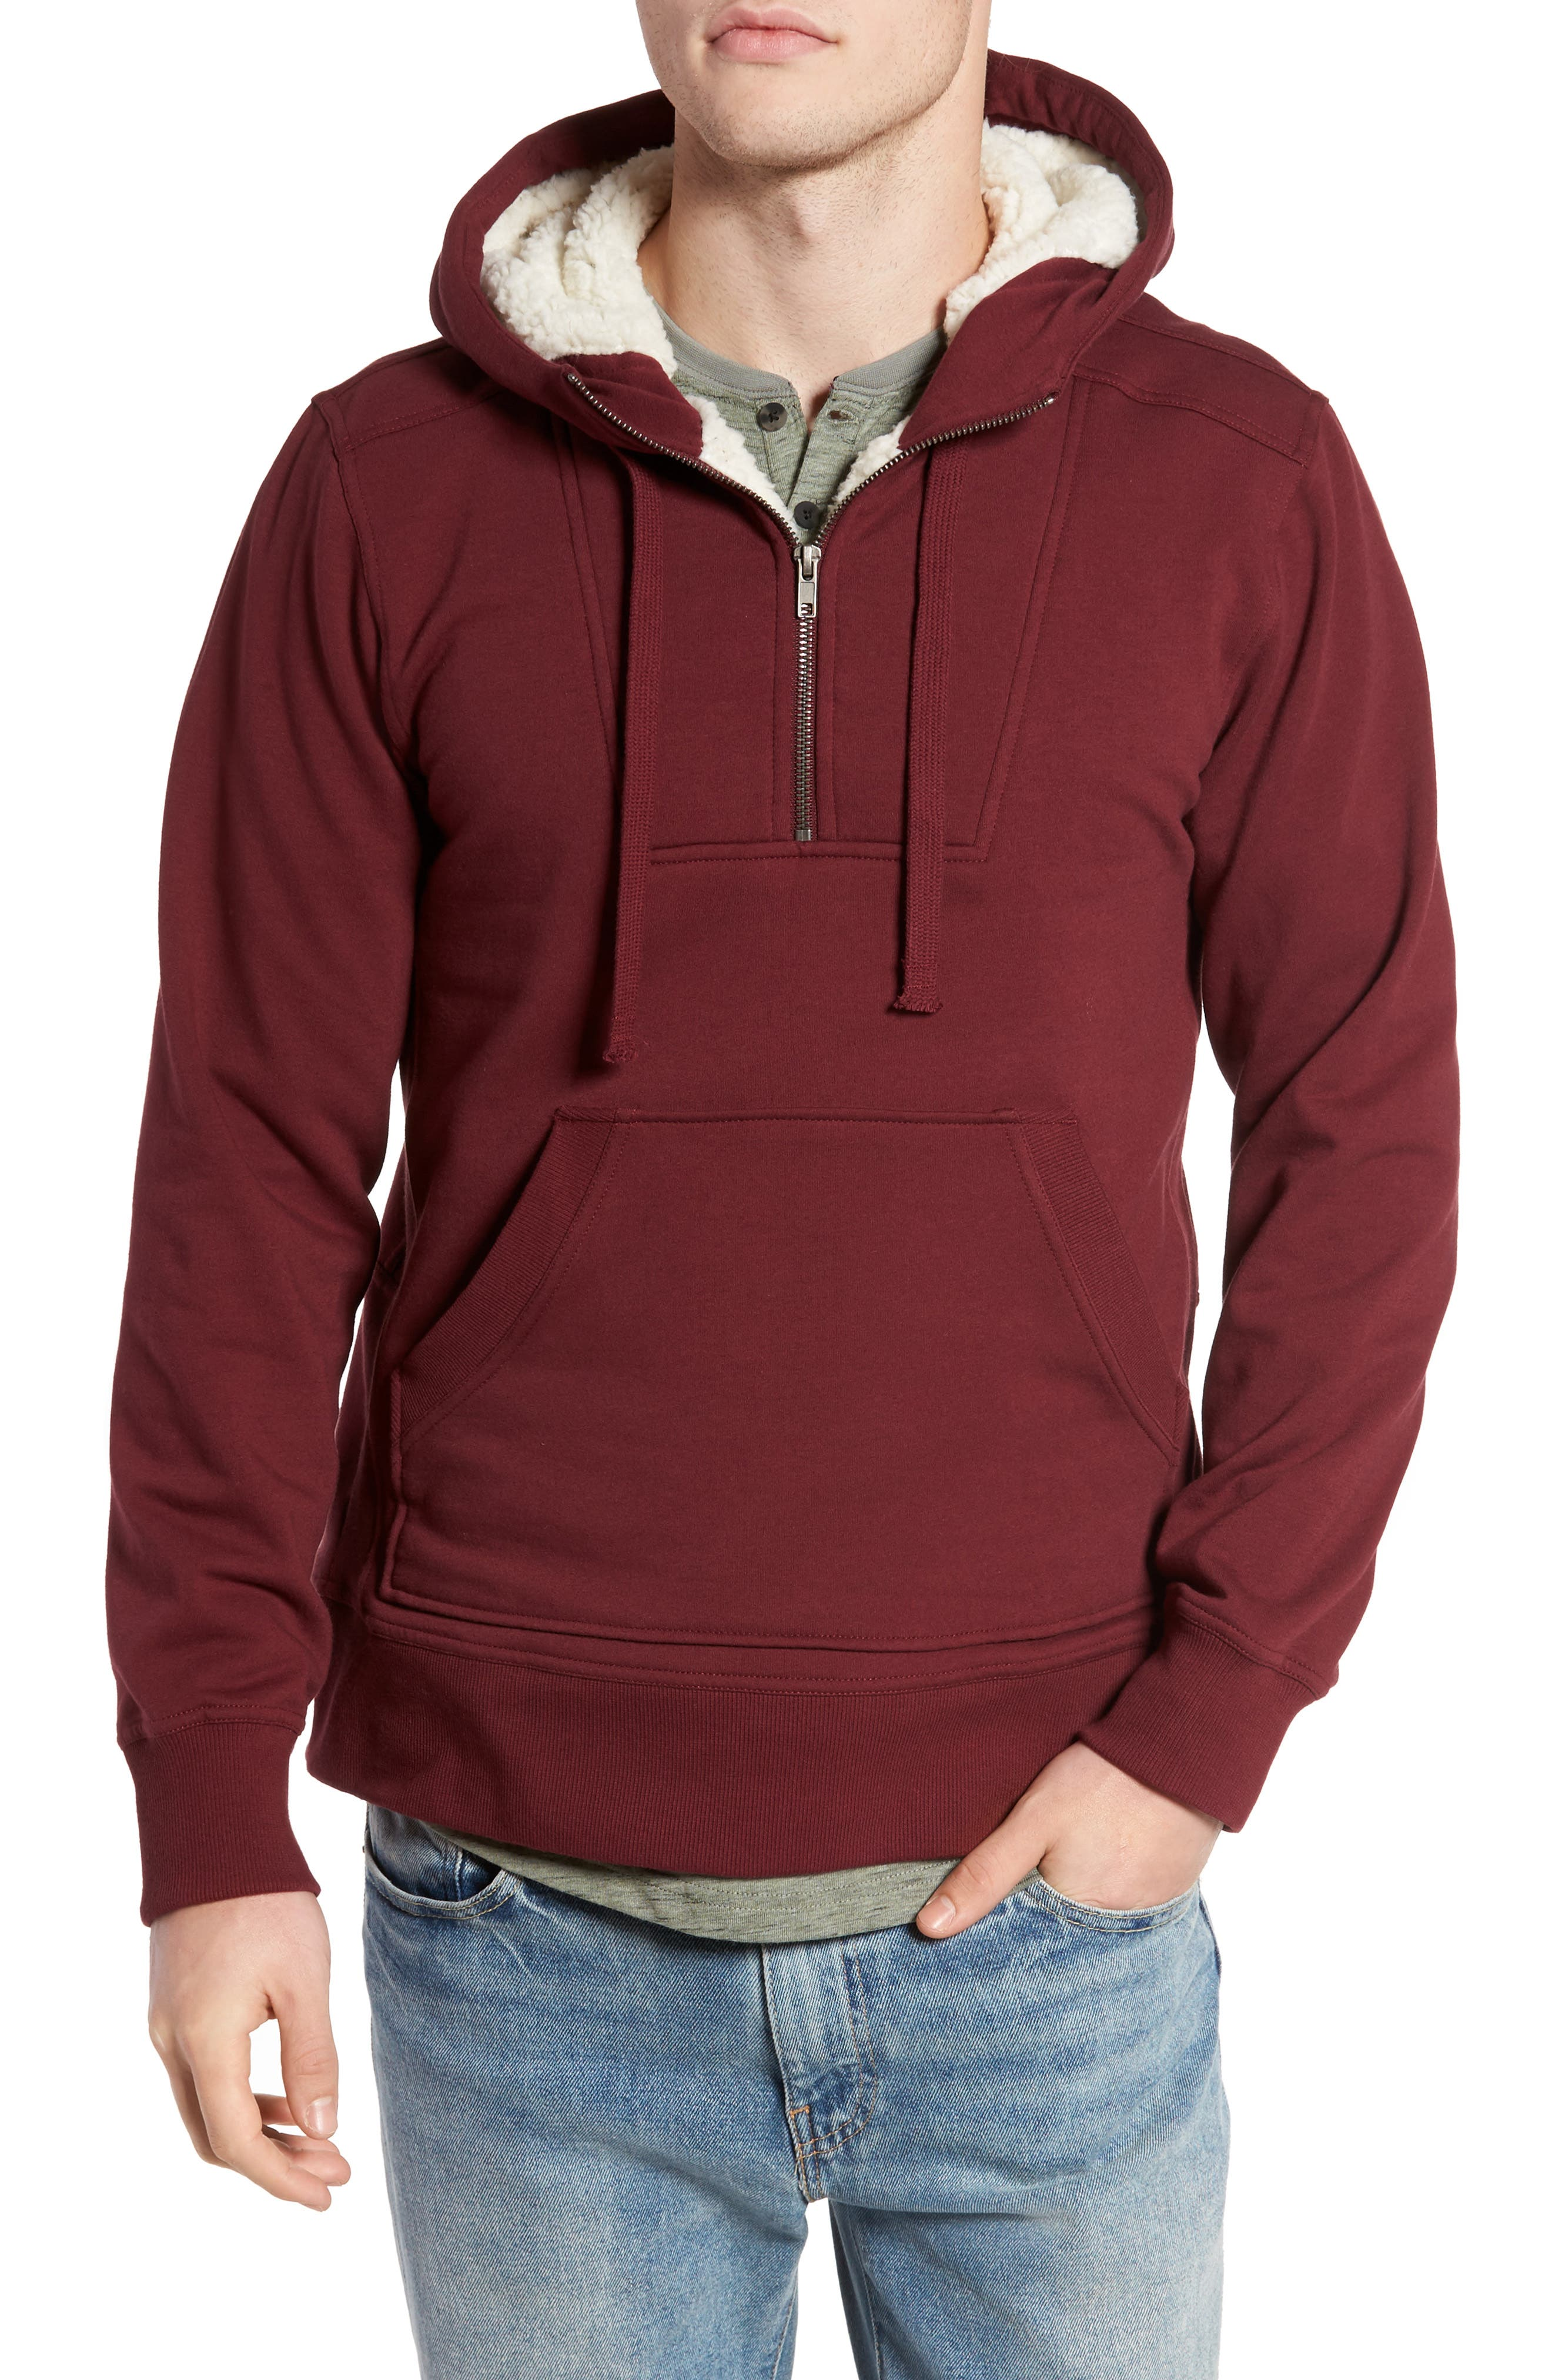 Main Image - Tunellus Fleece Lined Hoodie